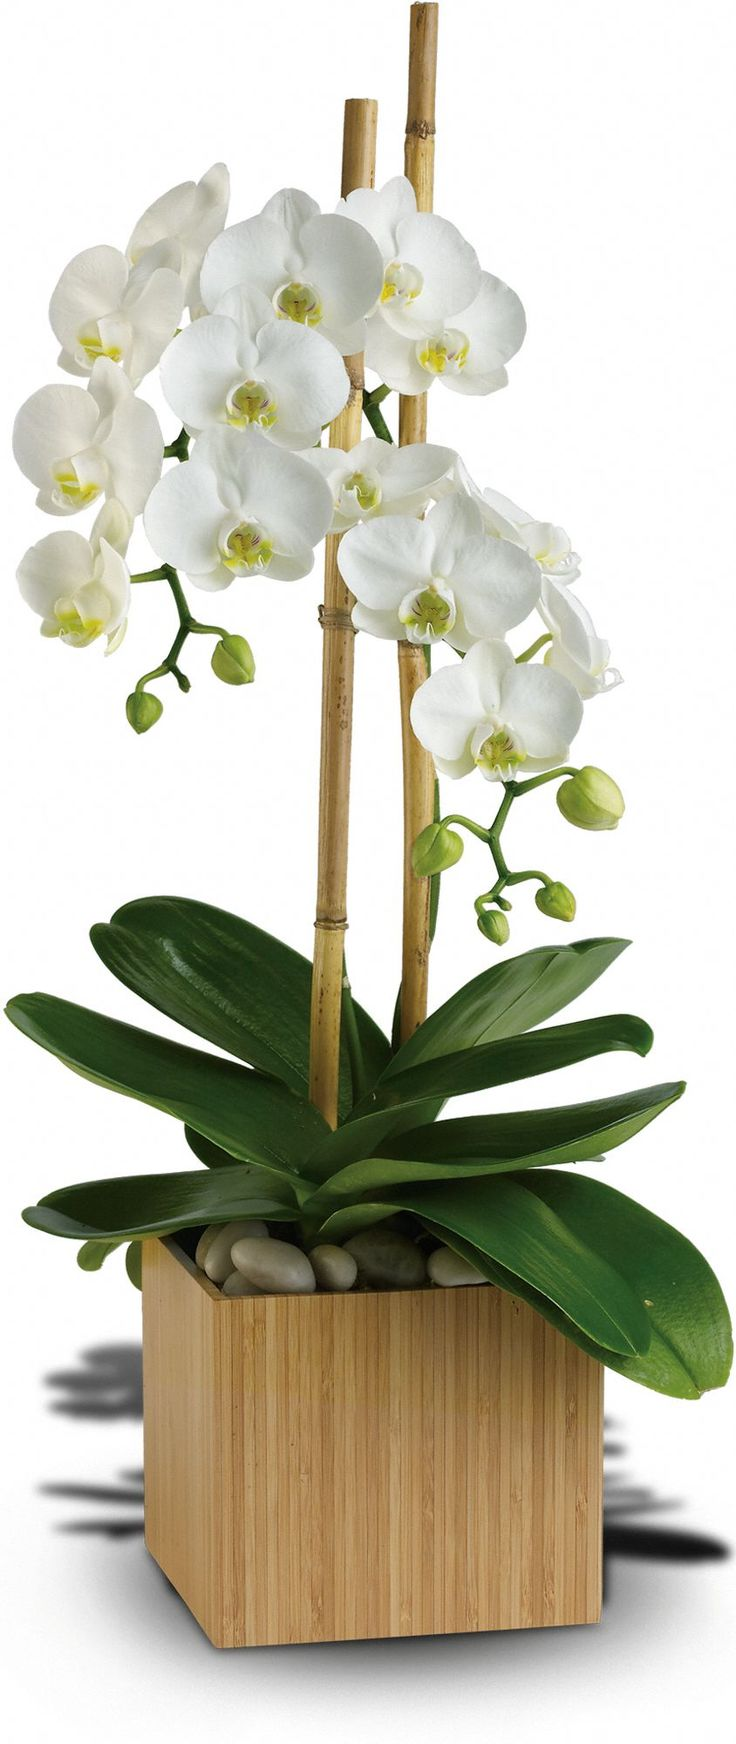 Send Zen. A graceful white phaleanopsis orchid plant potted in a modern bamboo container is an enchanting gift for any occasion.